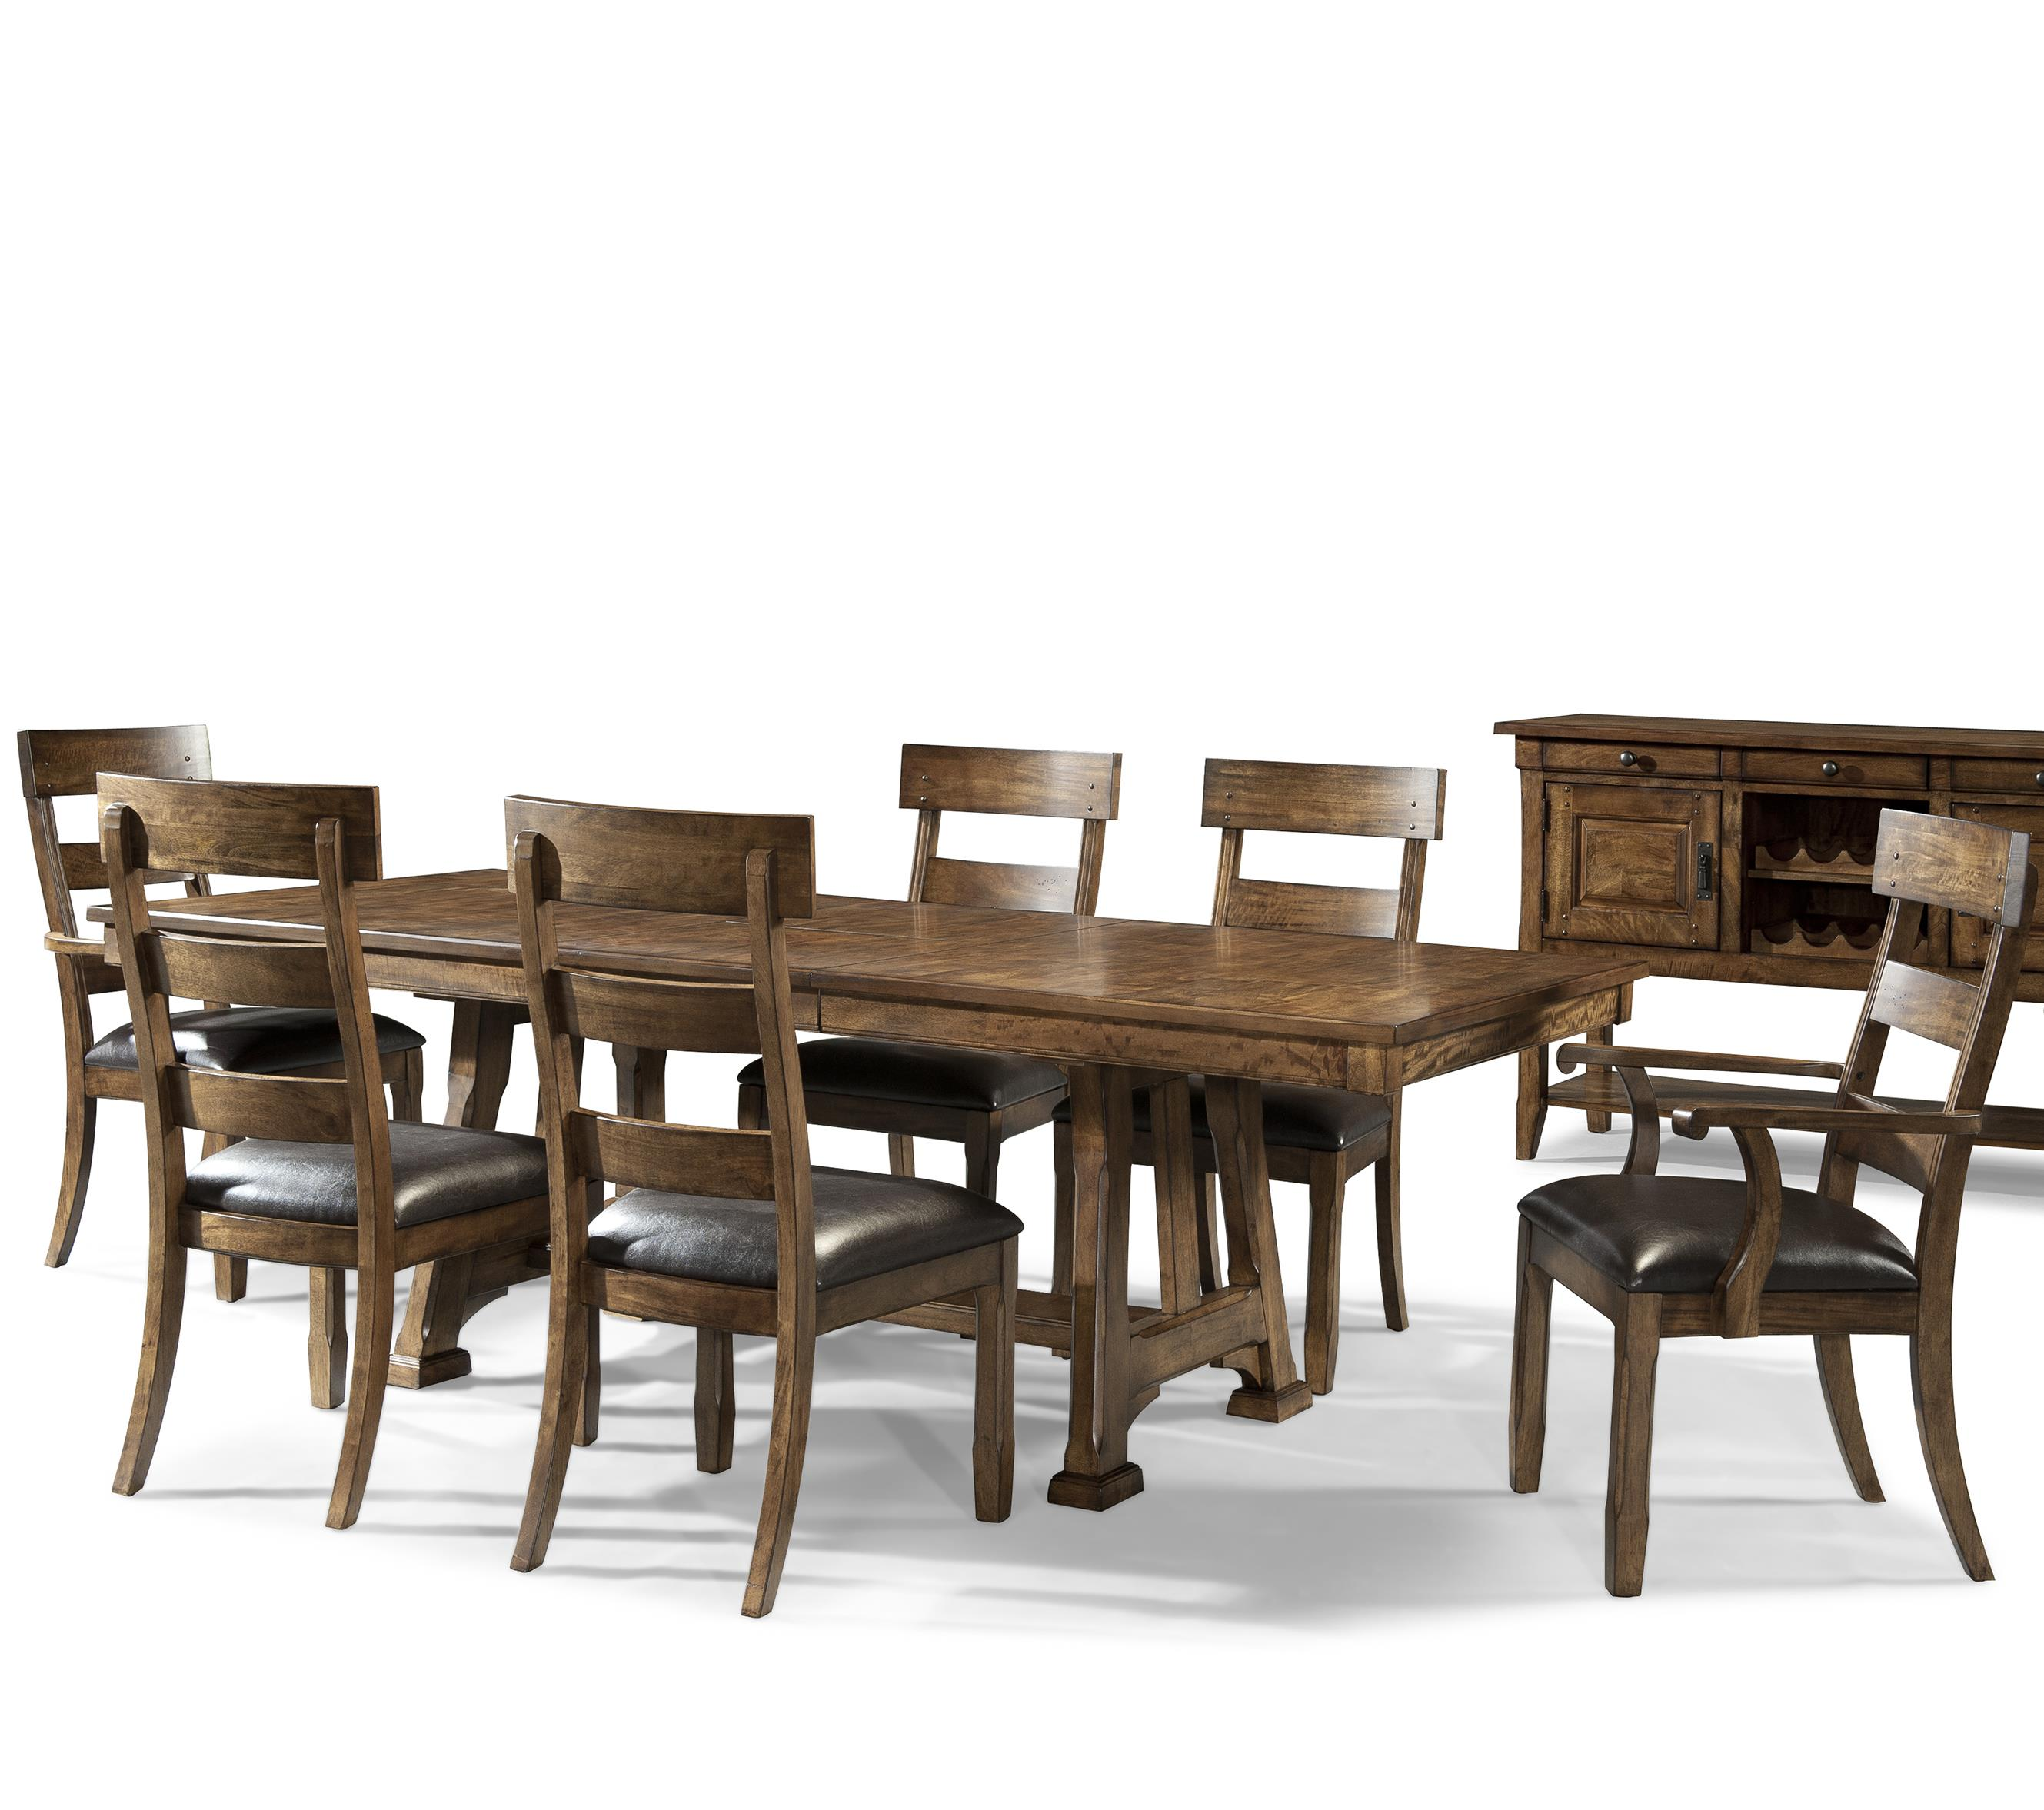 Ozark 7 Piece Trestle Table and Chair Set by A-A at Walker's Furniture